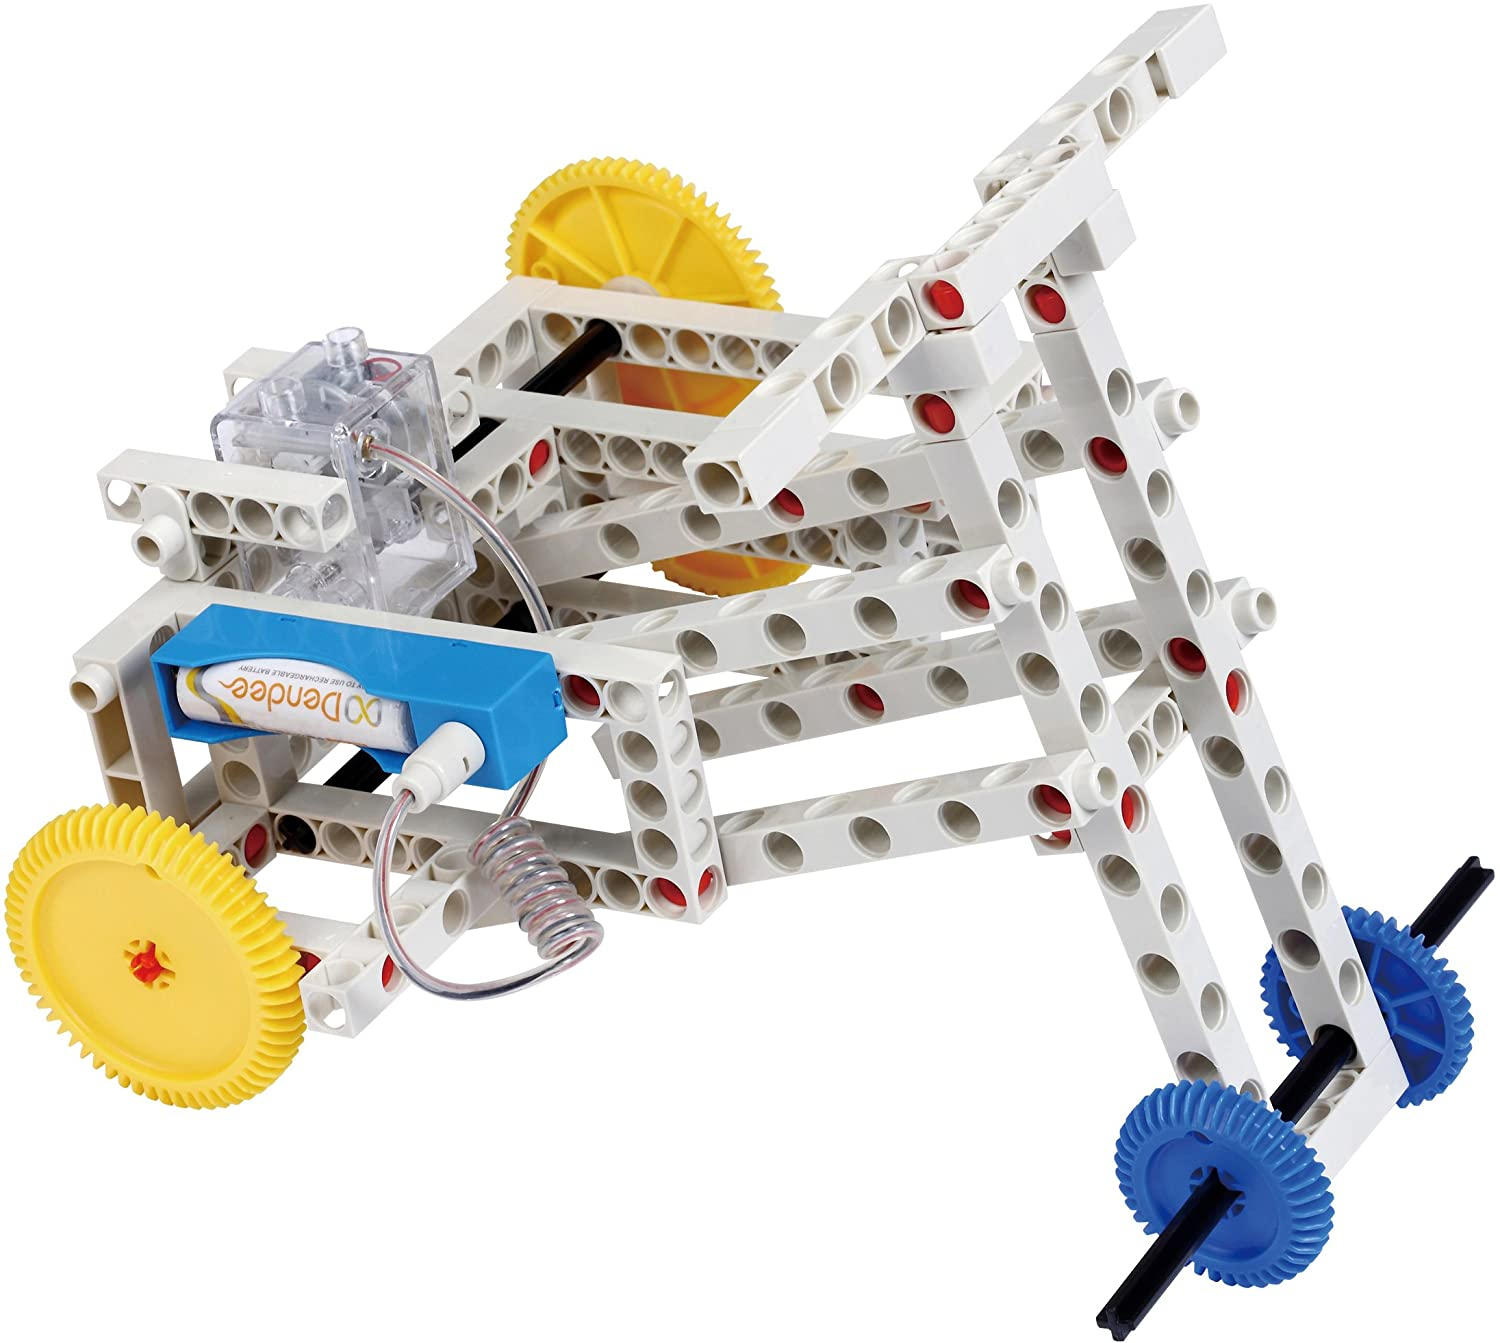 Buy Wind Power 20 Online At Low Prices In India Elenco Snap Circuits Green Alternative Energy Kit